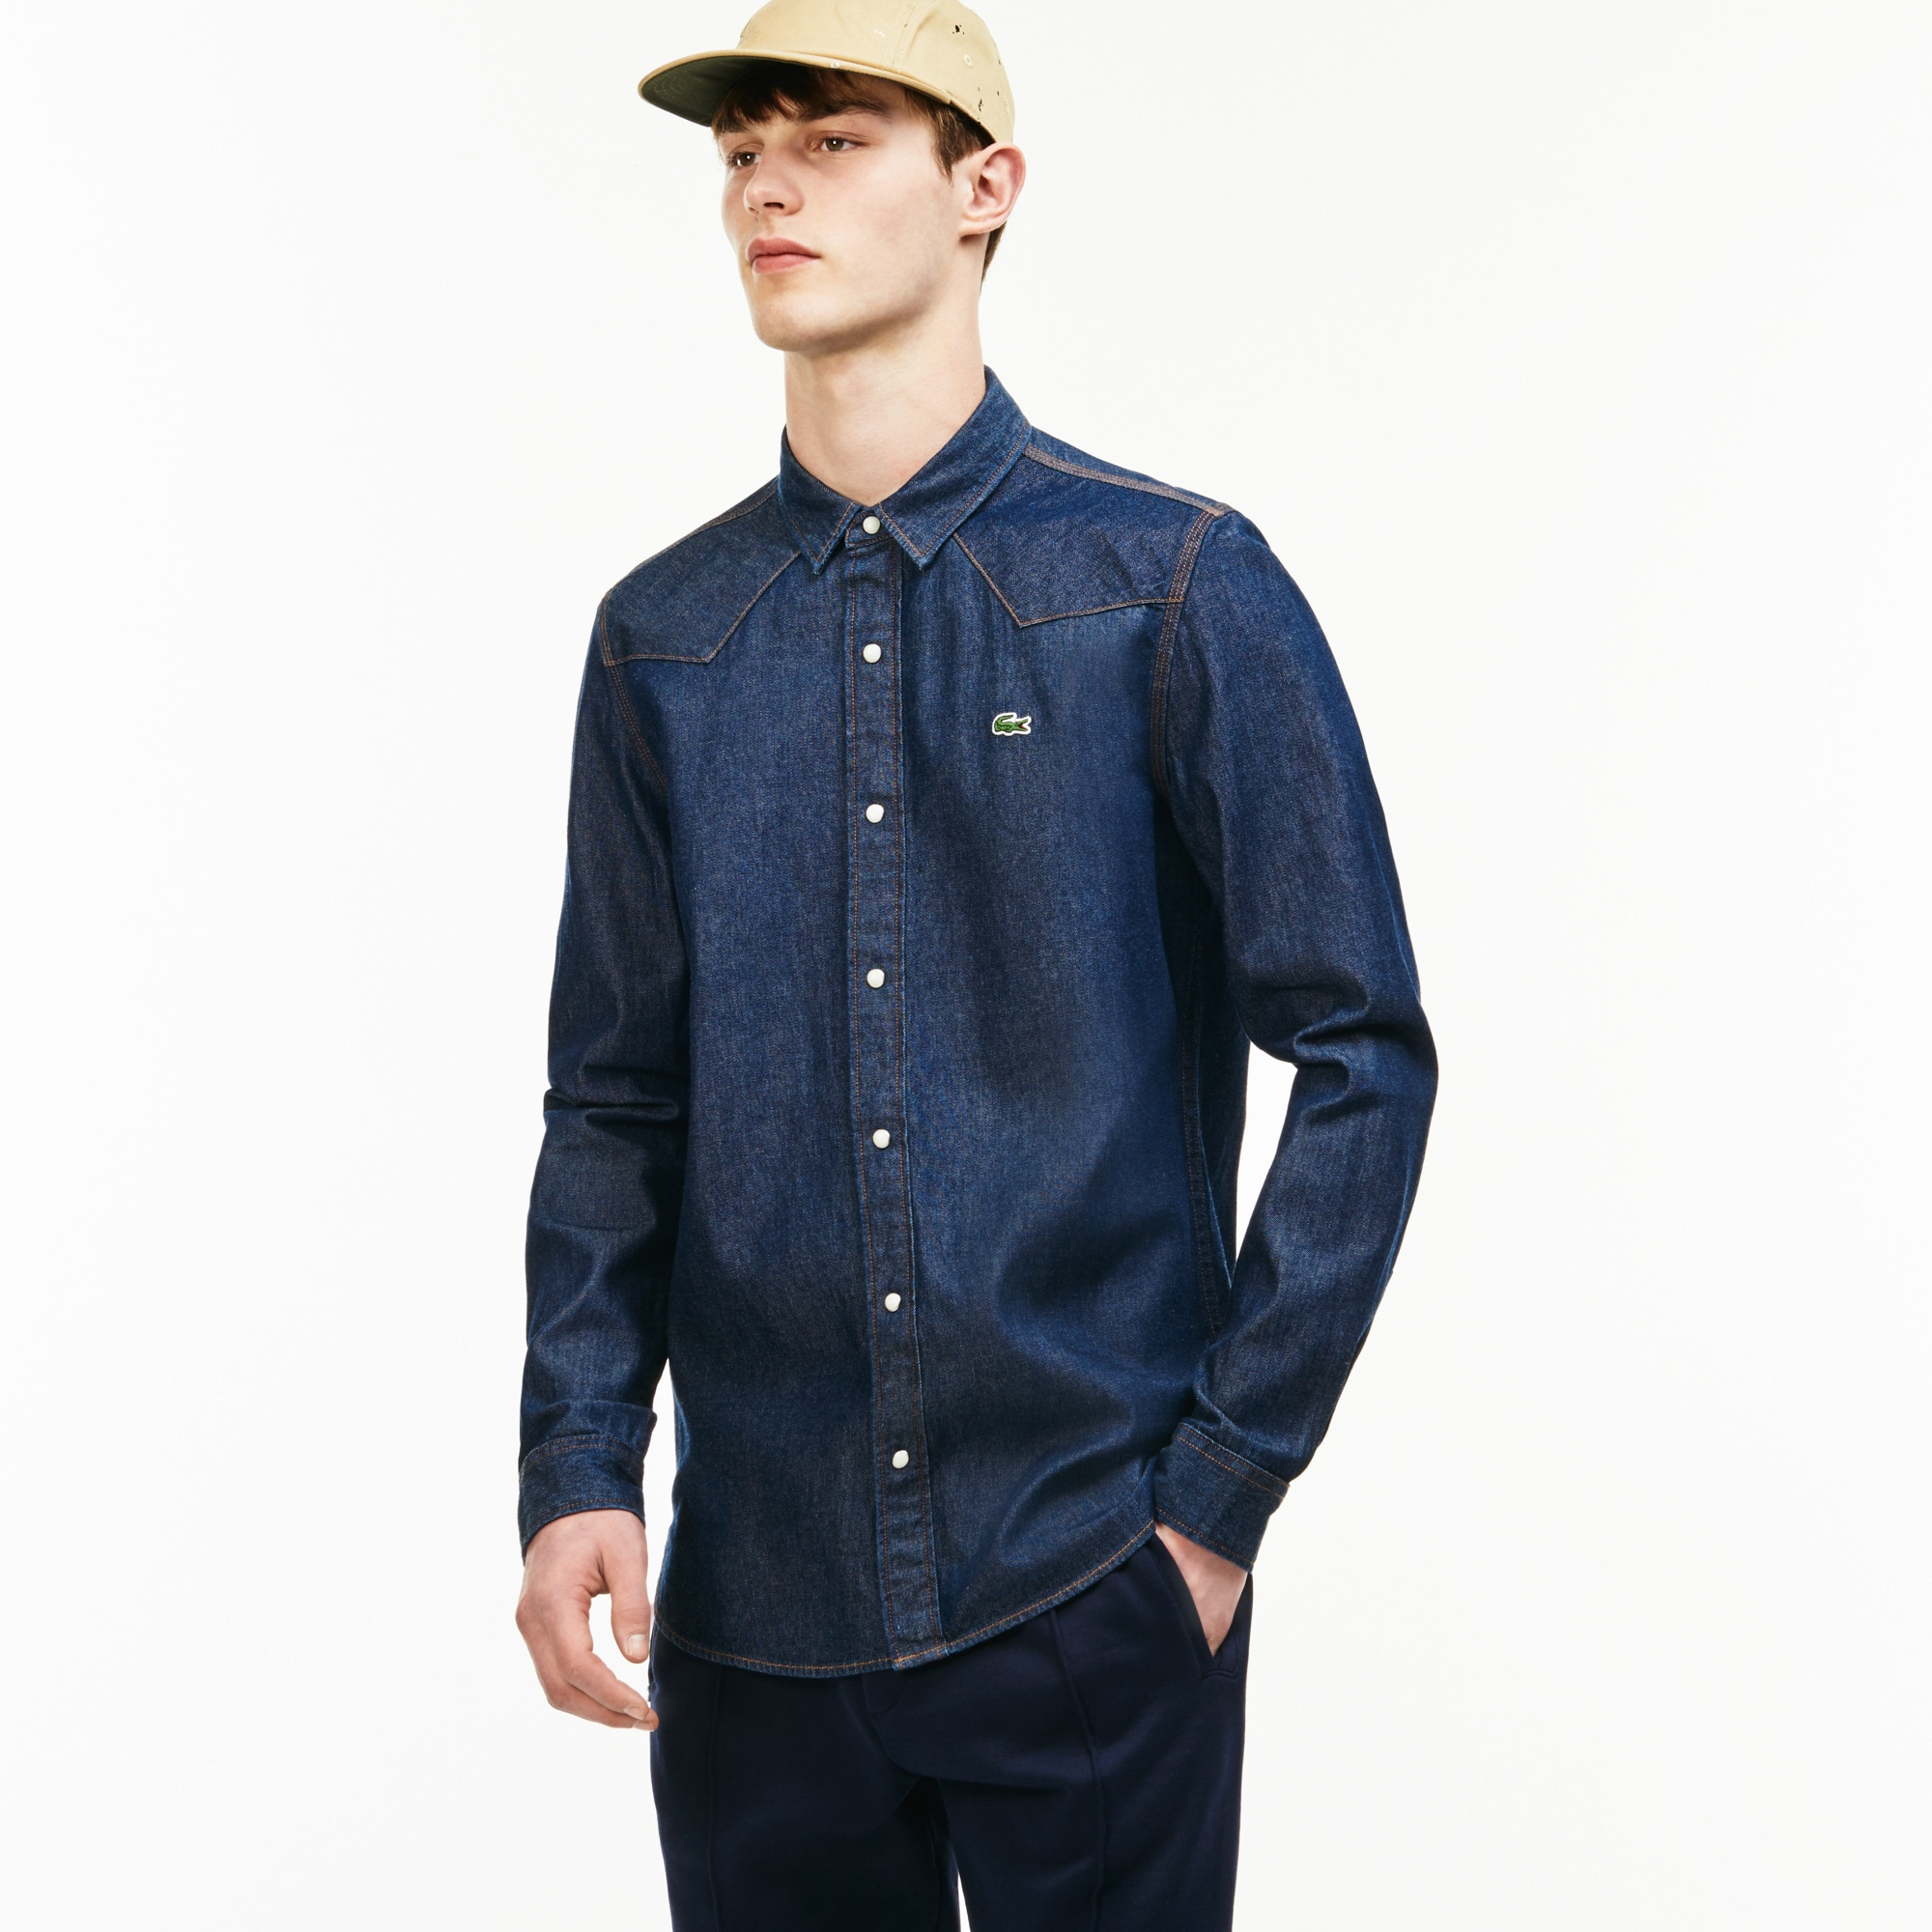 Men's Lacoste LIVE Slim Fit Western Yoke Denim Shirt